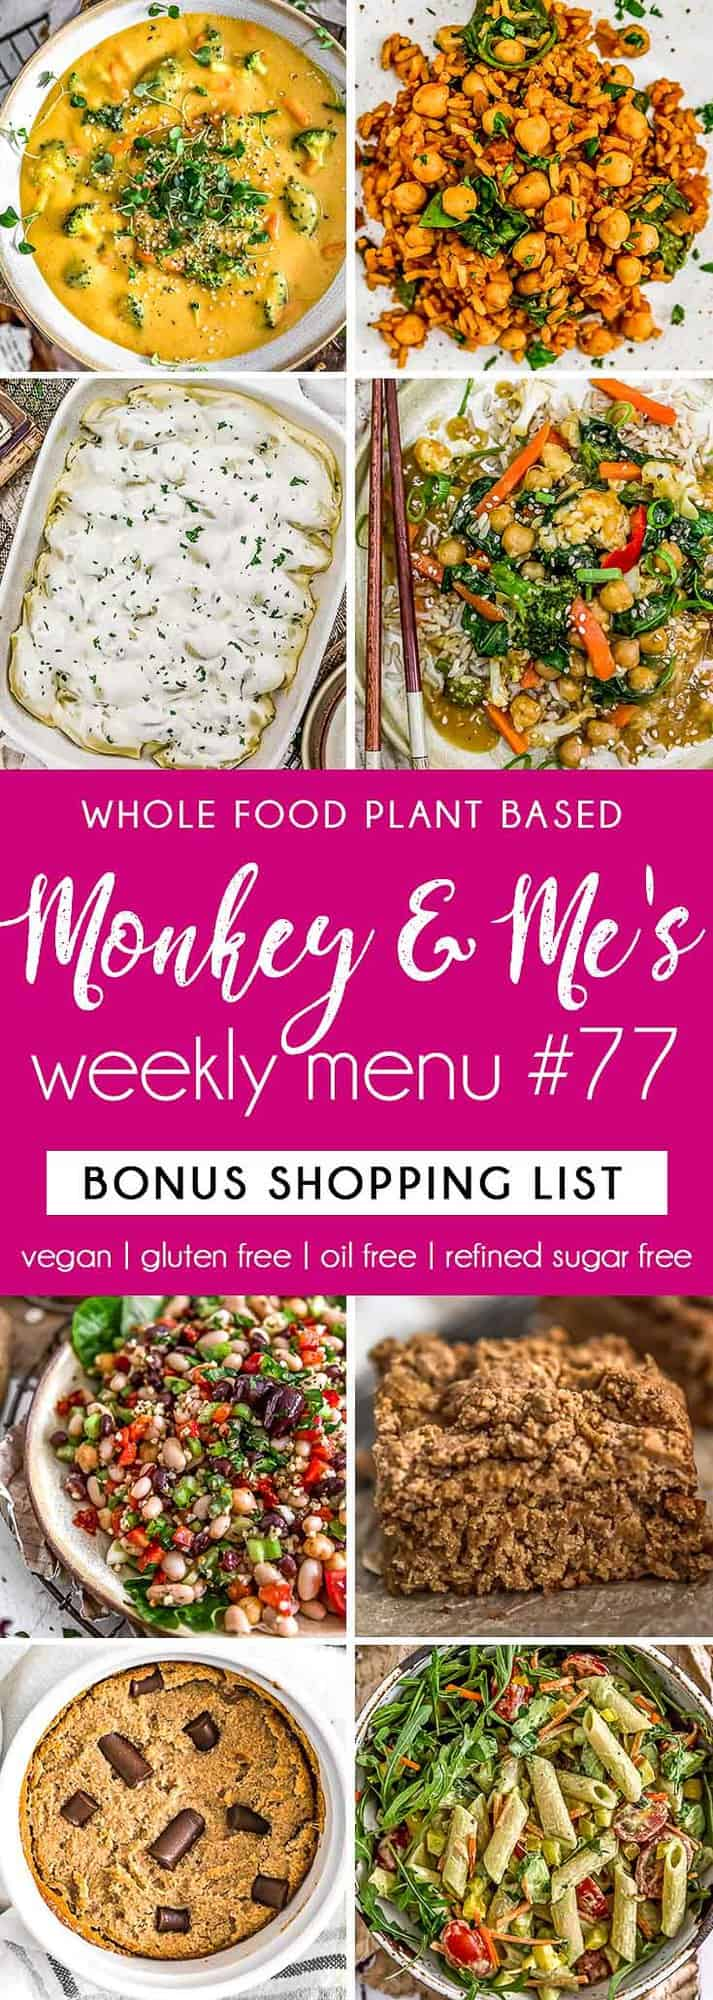 Monkey and Me's Menu 77 featuring 8 recipes